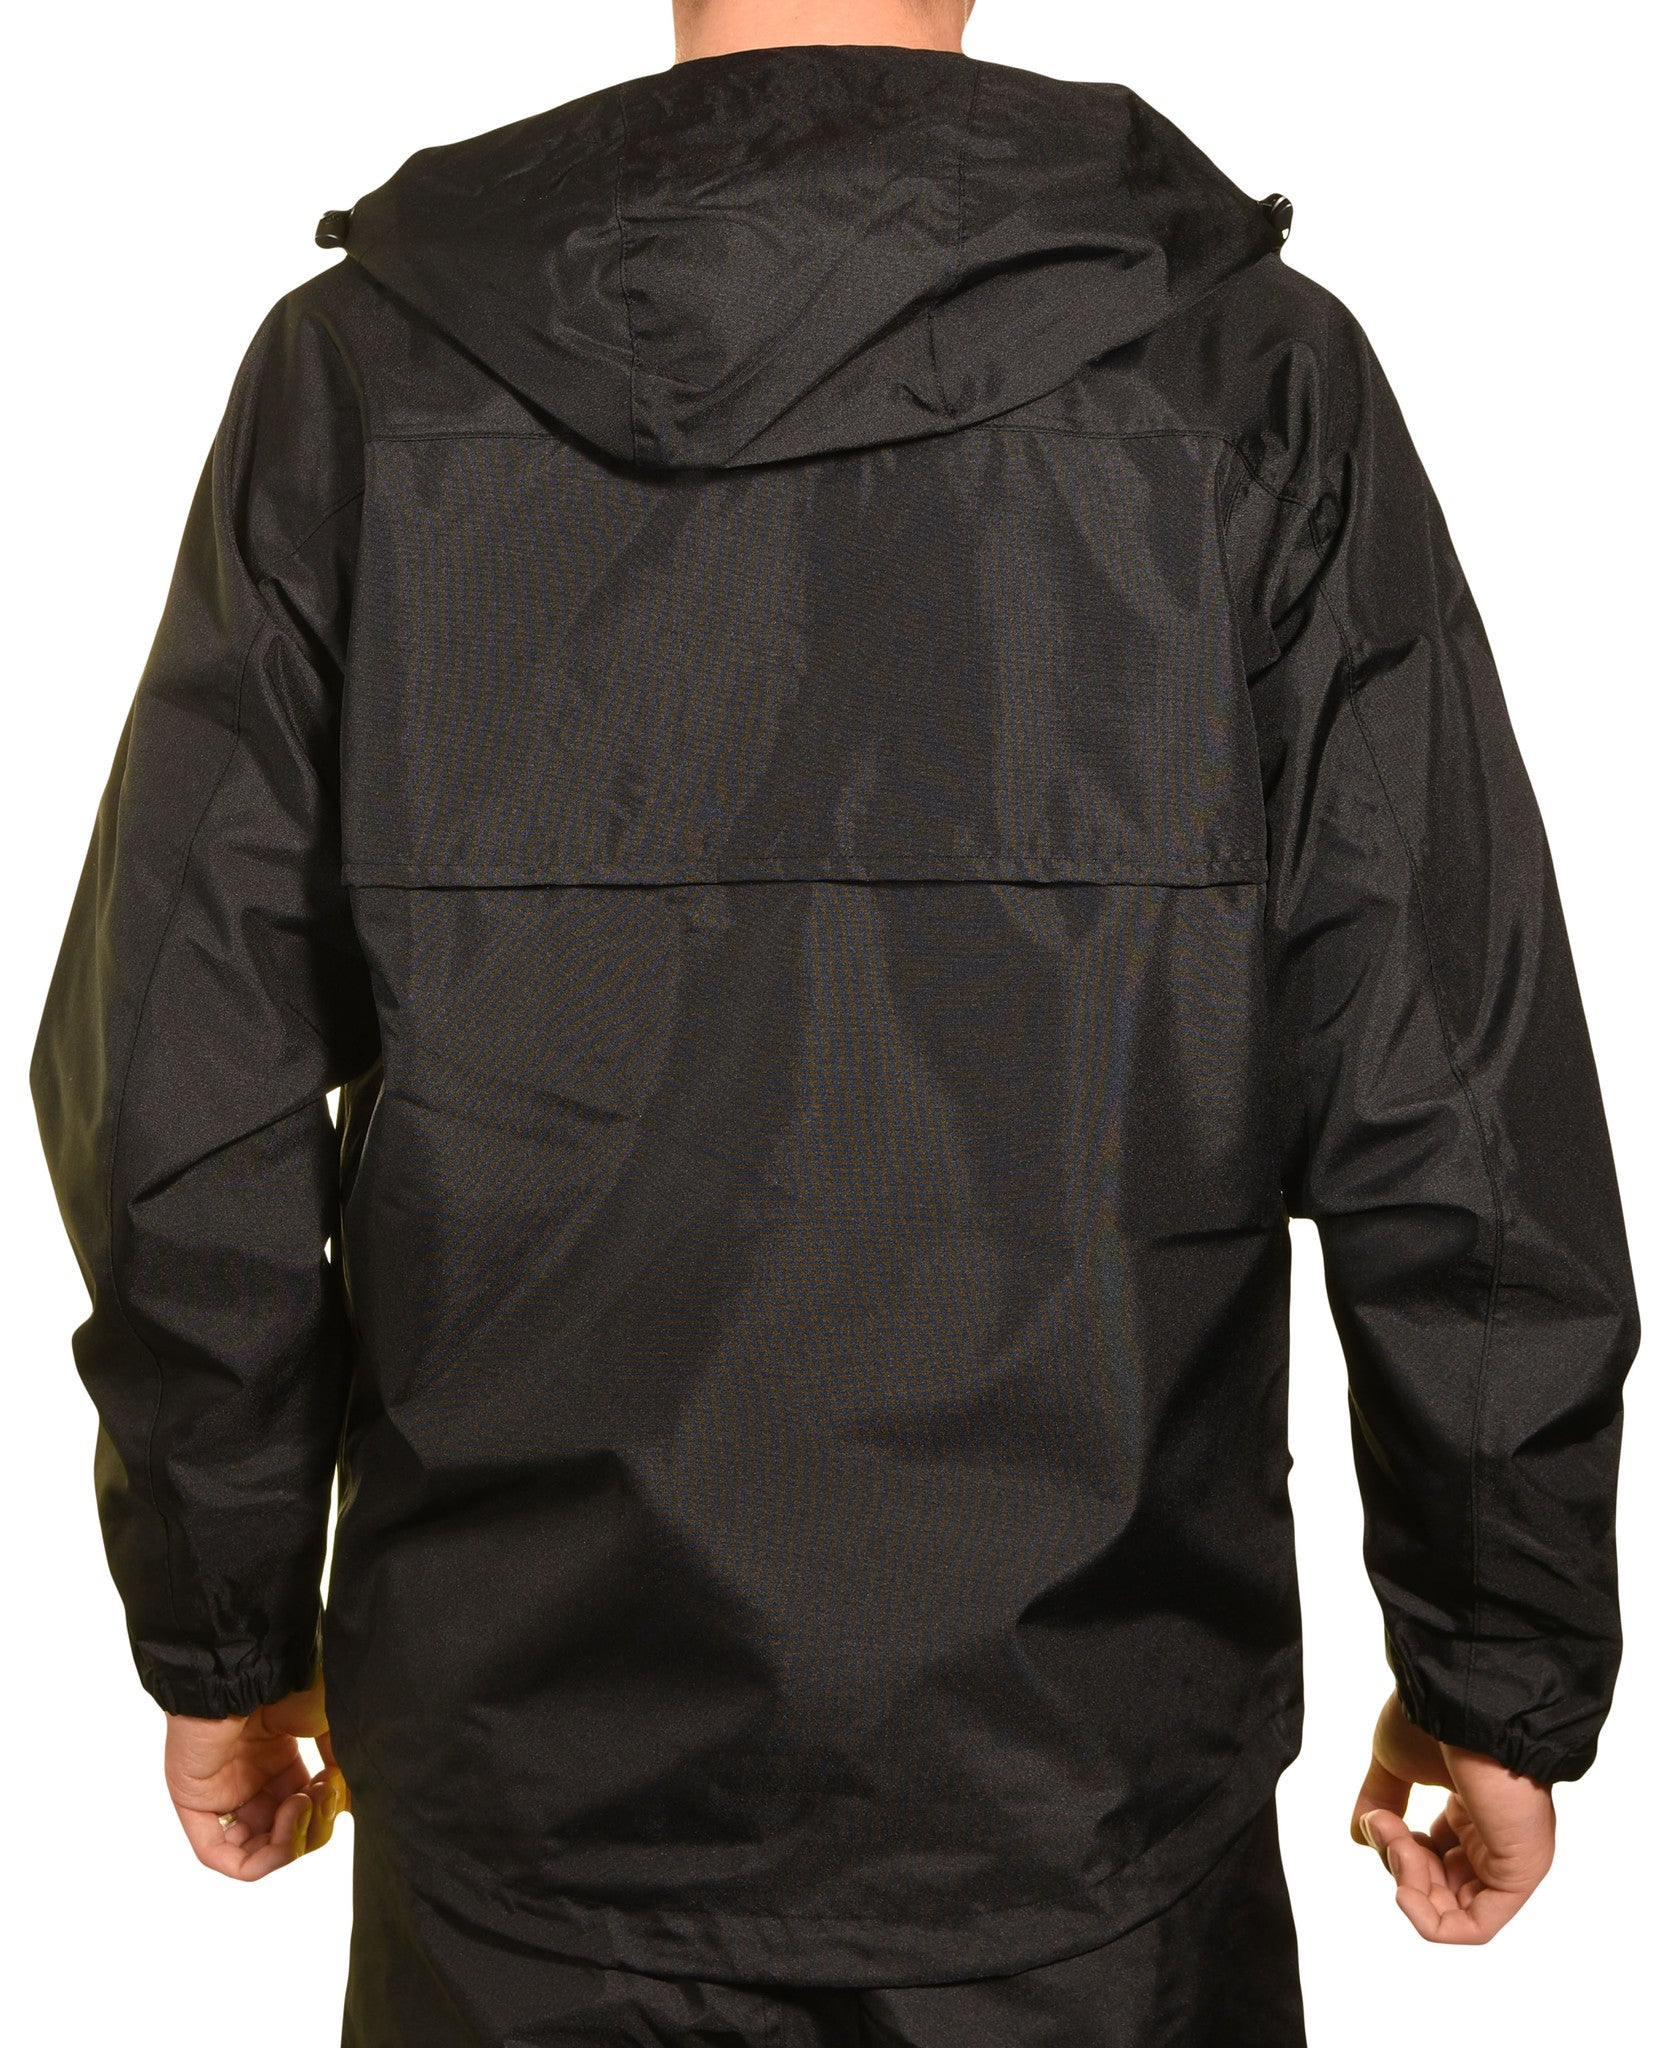 Guides Choice Mens Breathable Waterproof Seattle Storm Watch Parka - Black